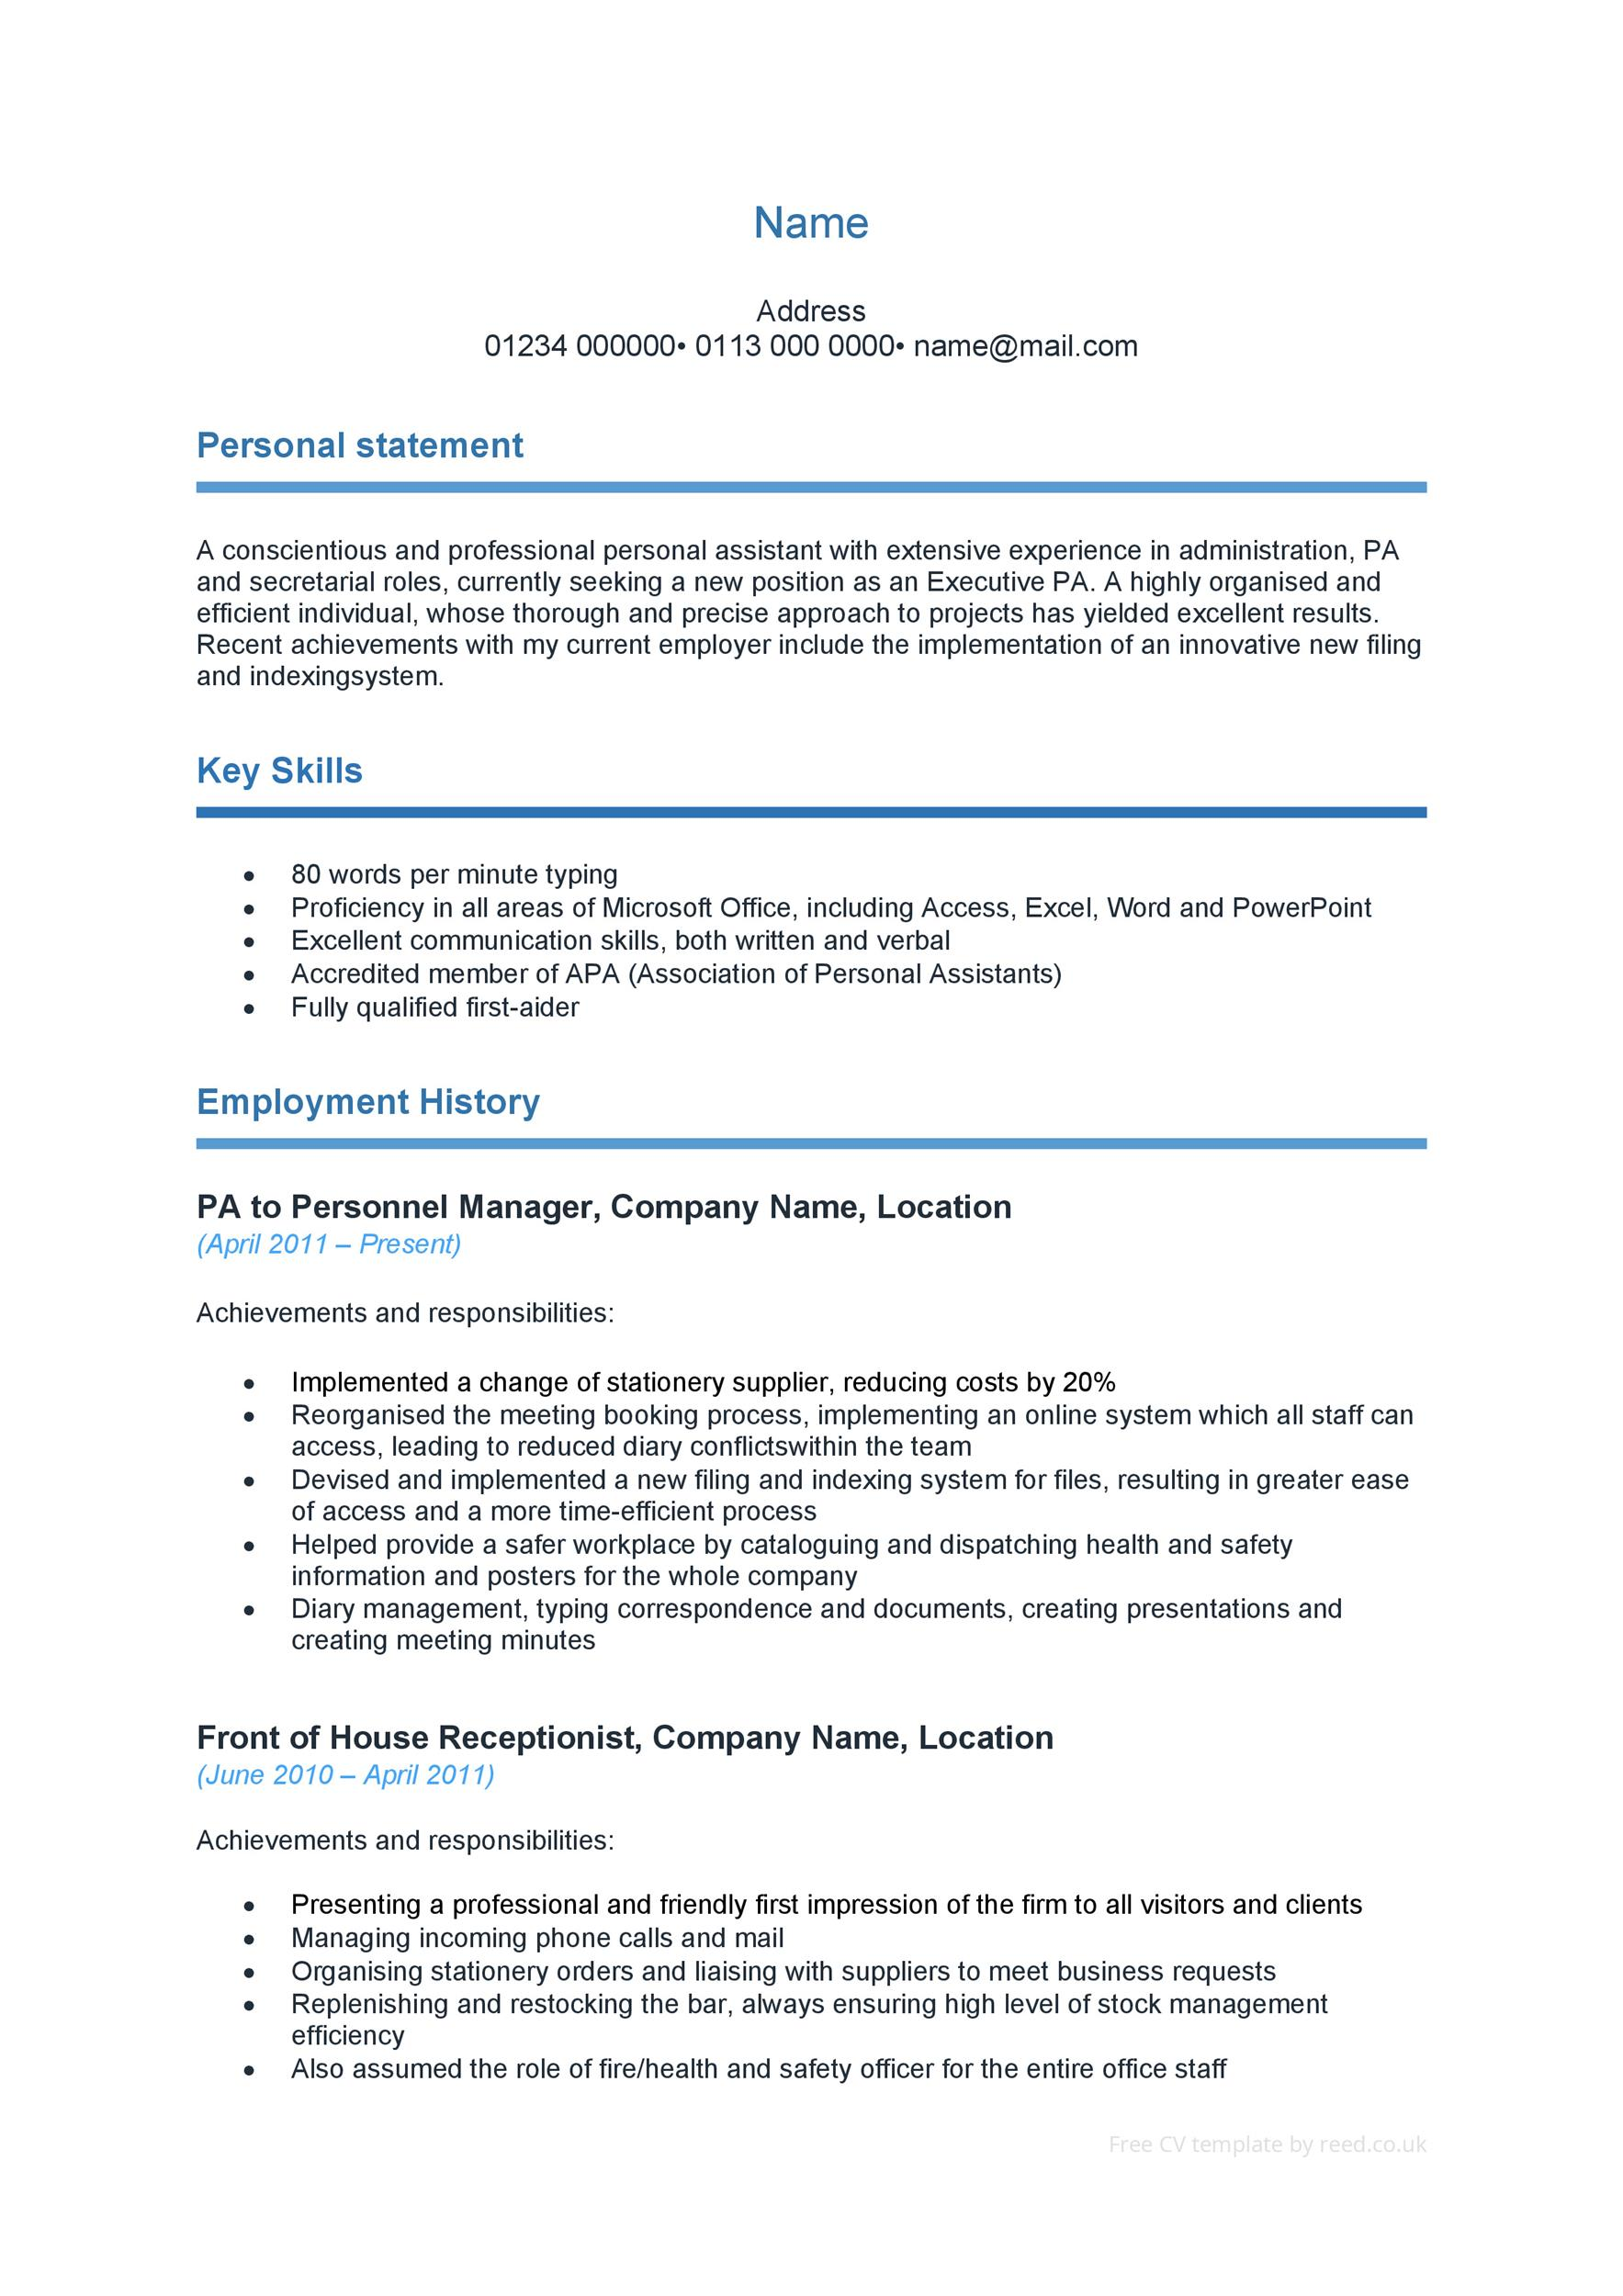 Curriculum Vitae Wikipedia 48 Great Curriculum Vitae Templates And Examples Template Lab